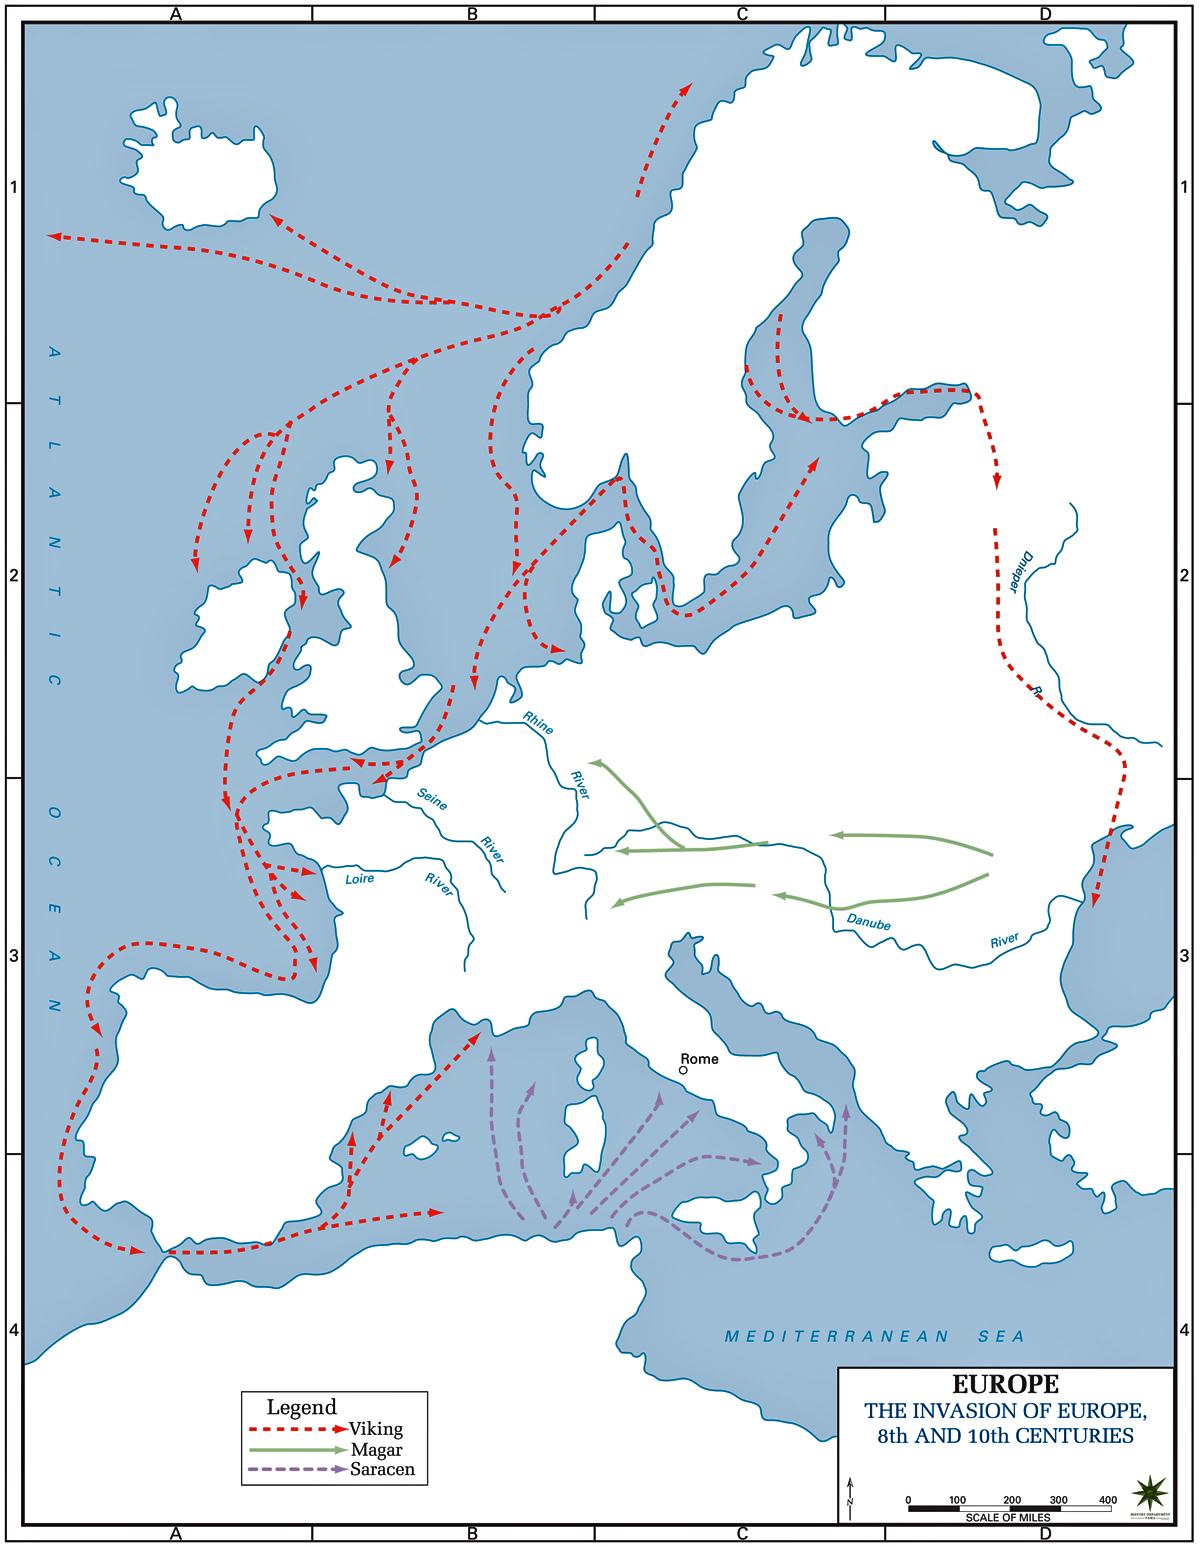 Map of the Invasions of Europe 8-10th Century